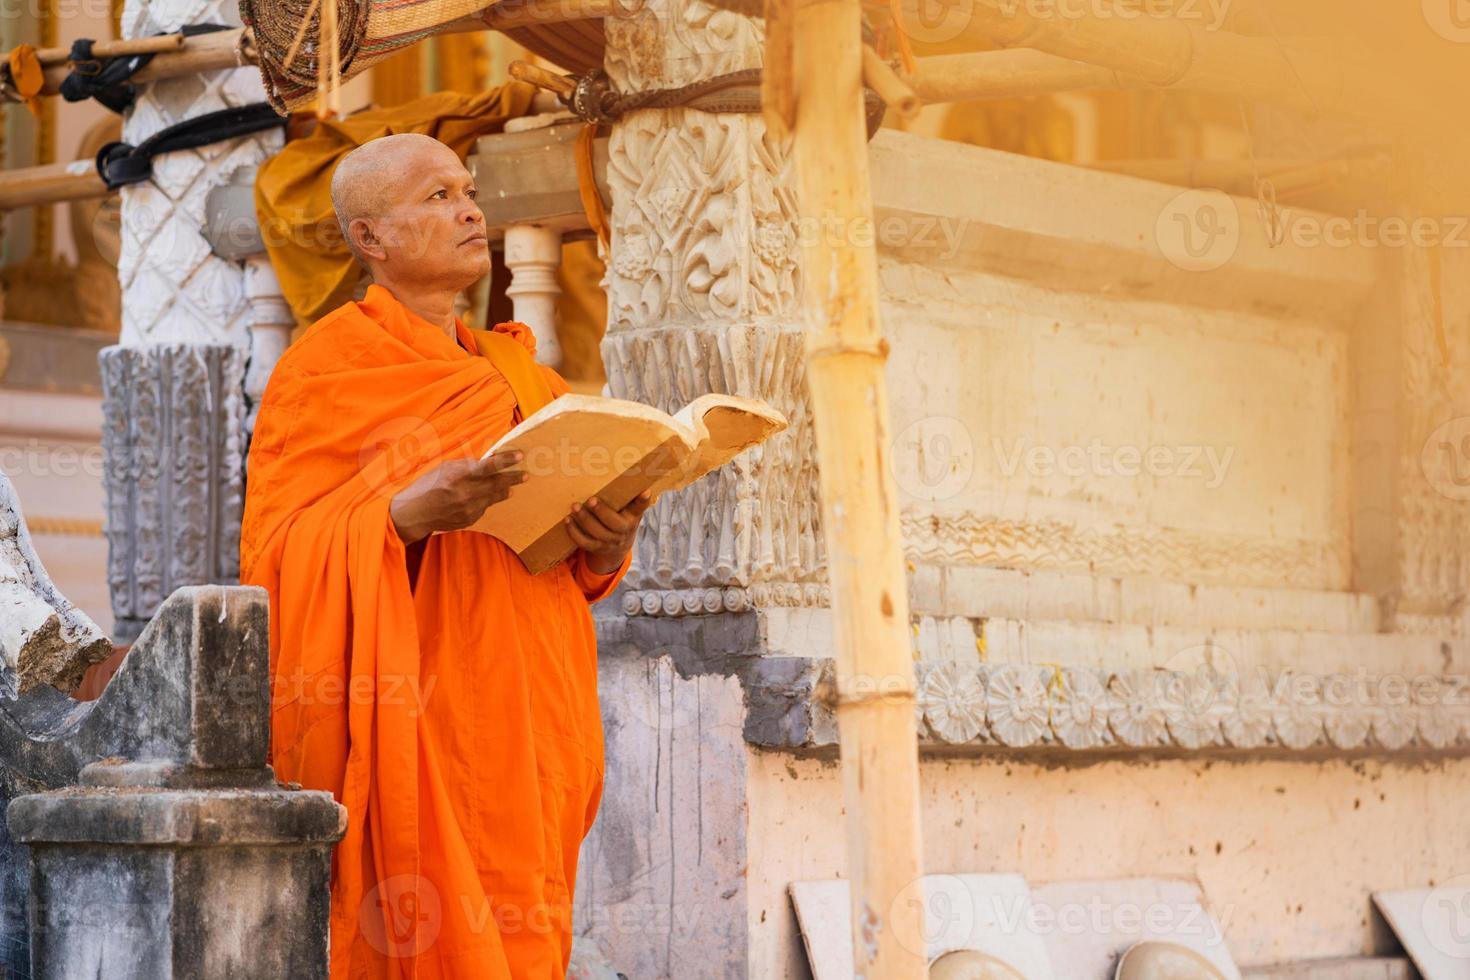 Monks in Thailand are reading books photo